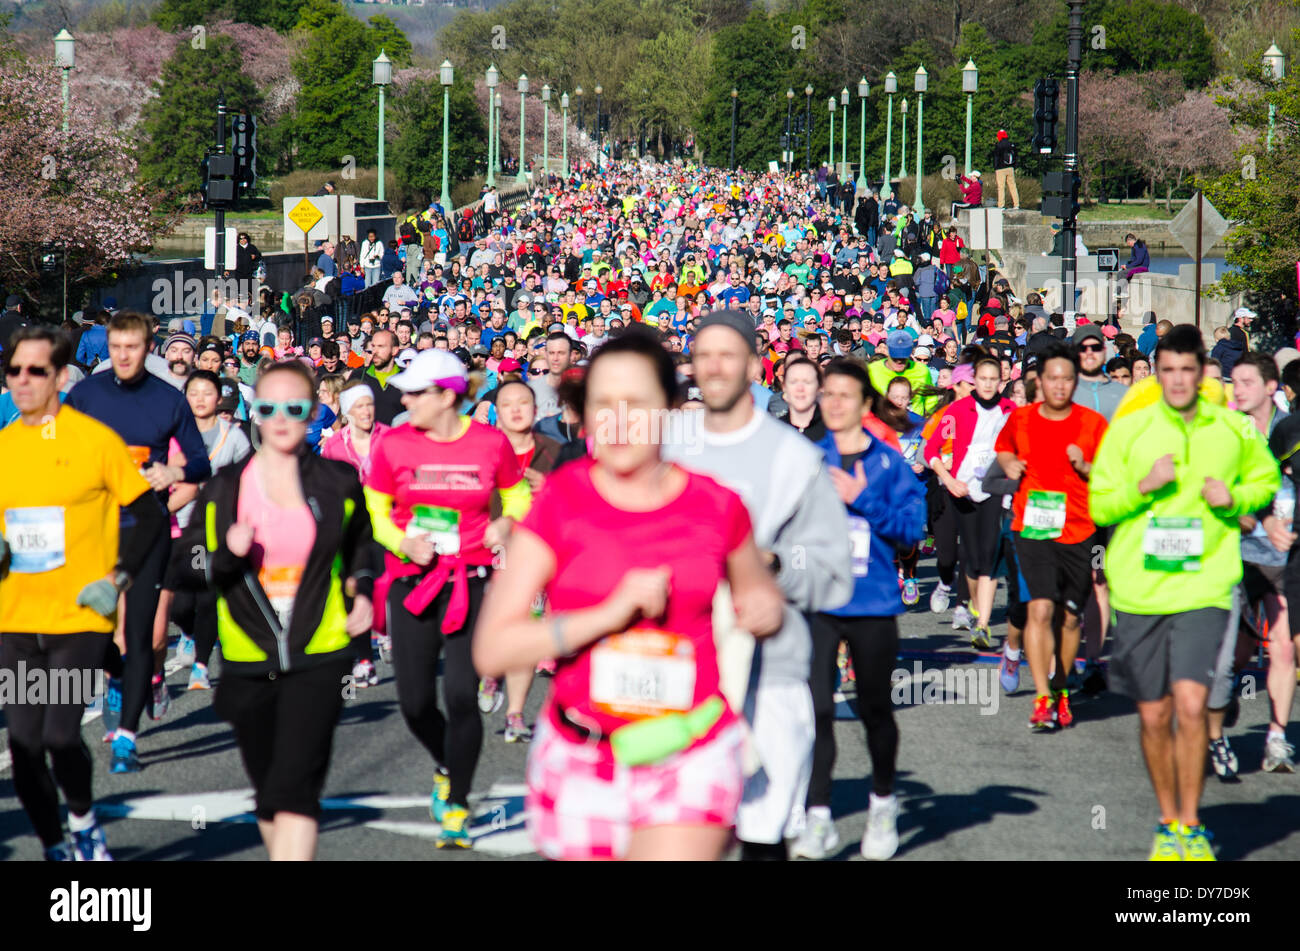 Runners competing in the Washington DC Cherry Blossom 10 Mile Race - Stock Image